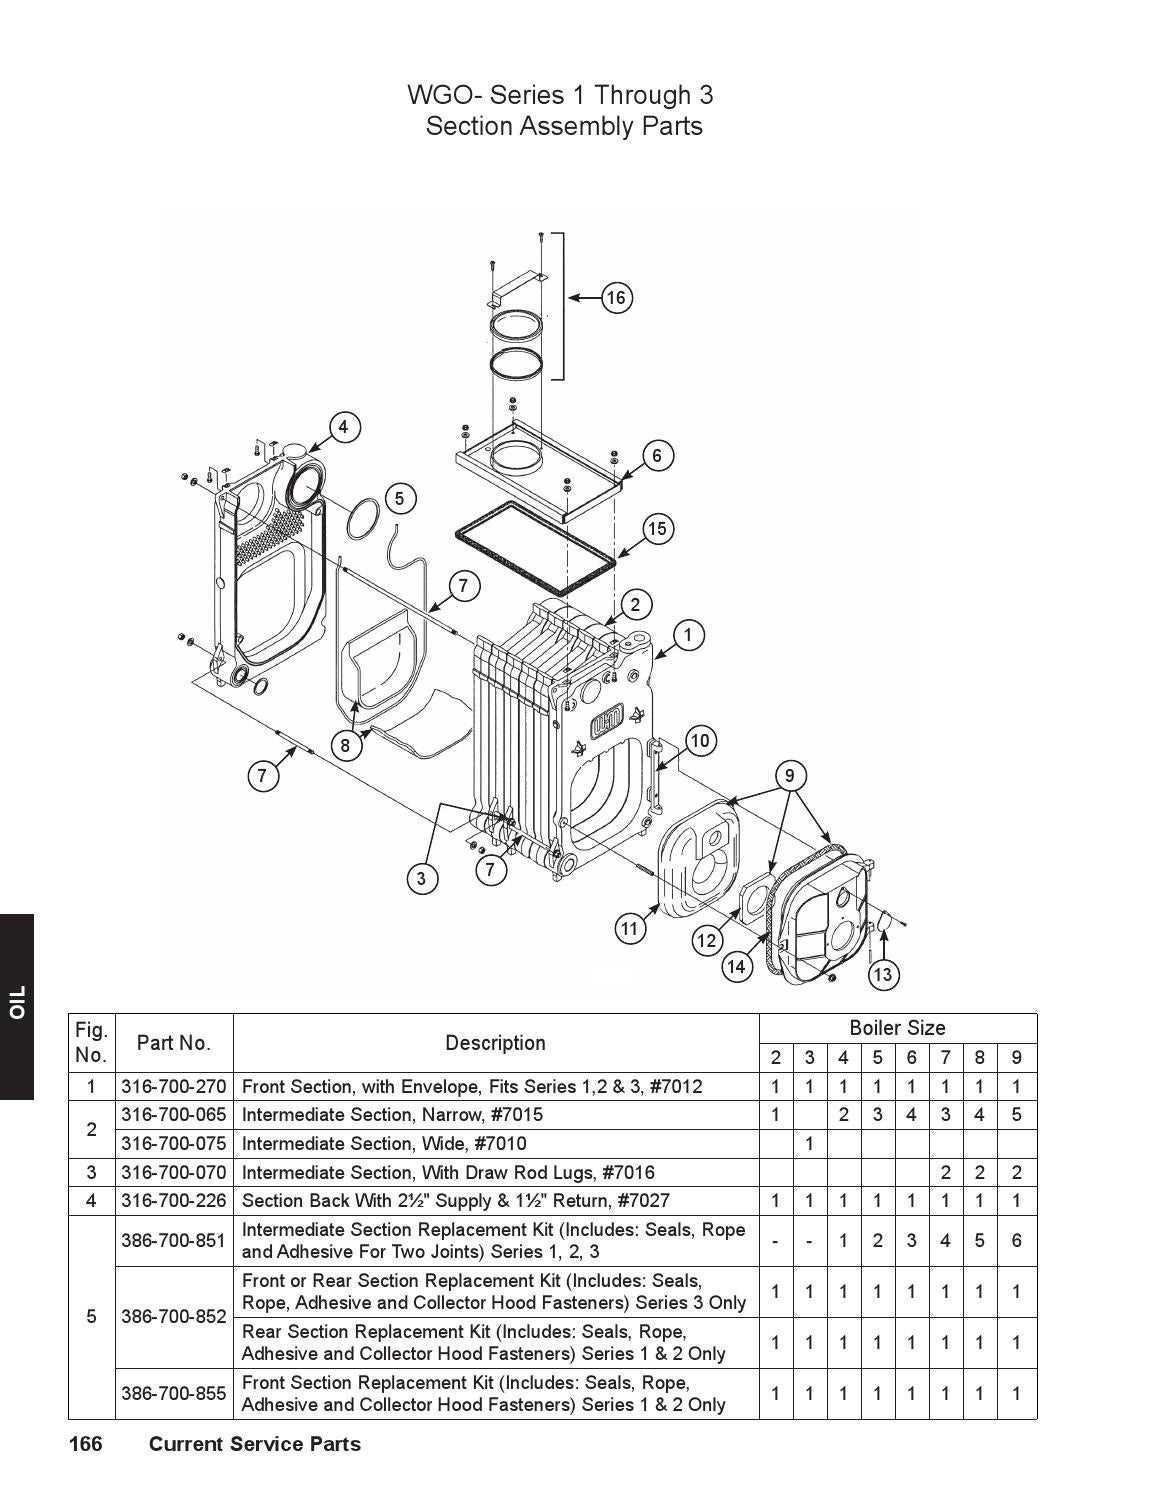 2015 service parts catalog by weil-mclain  page 166